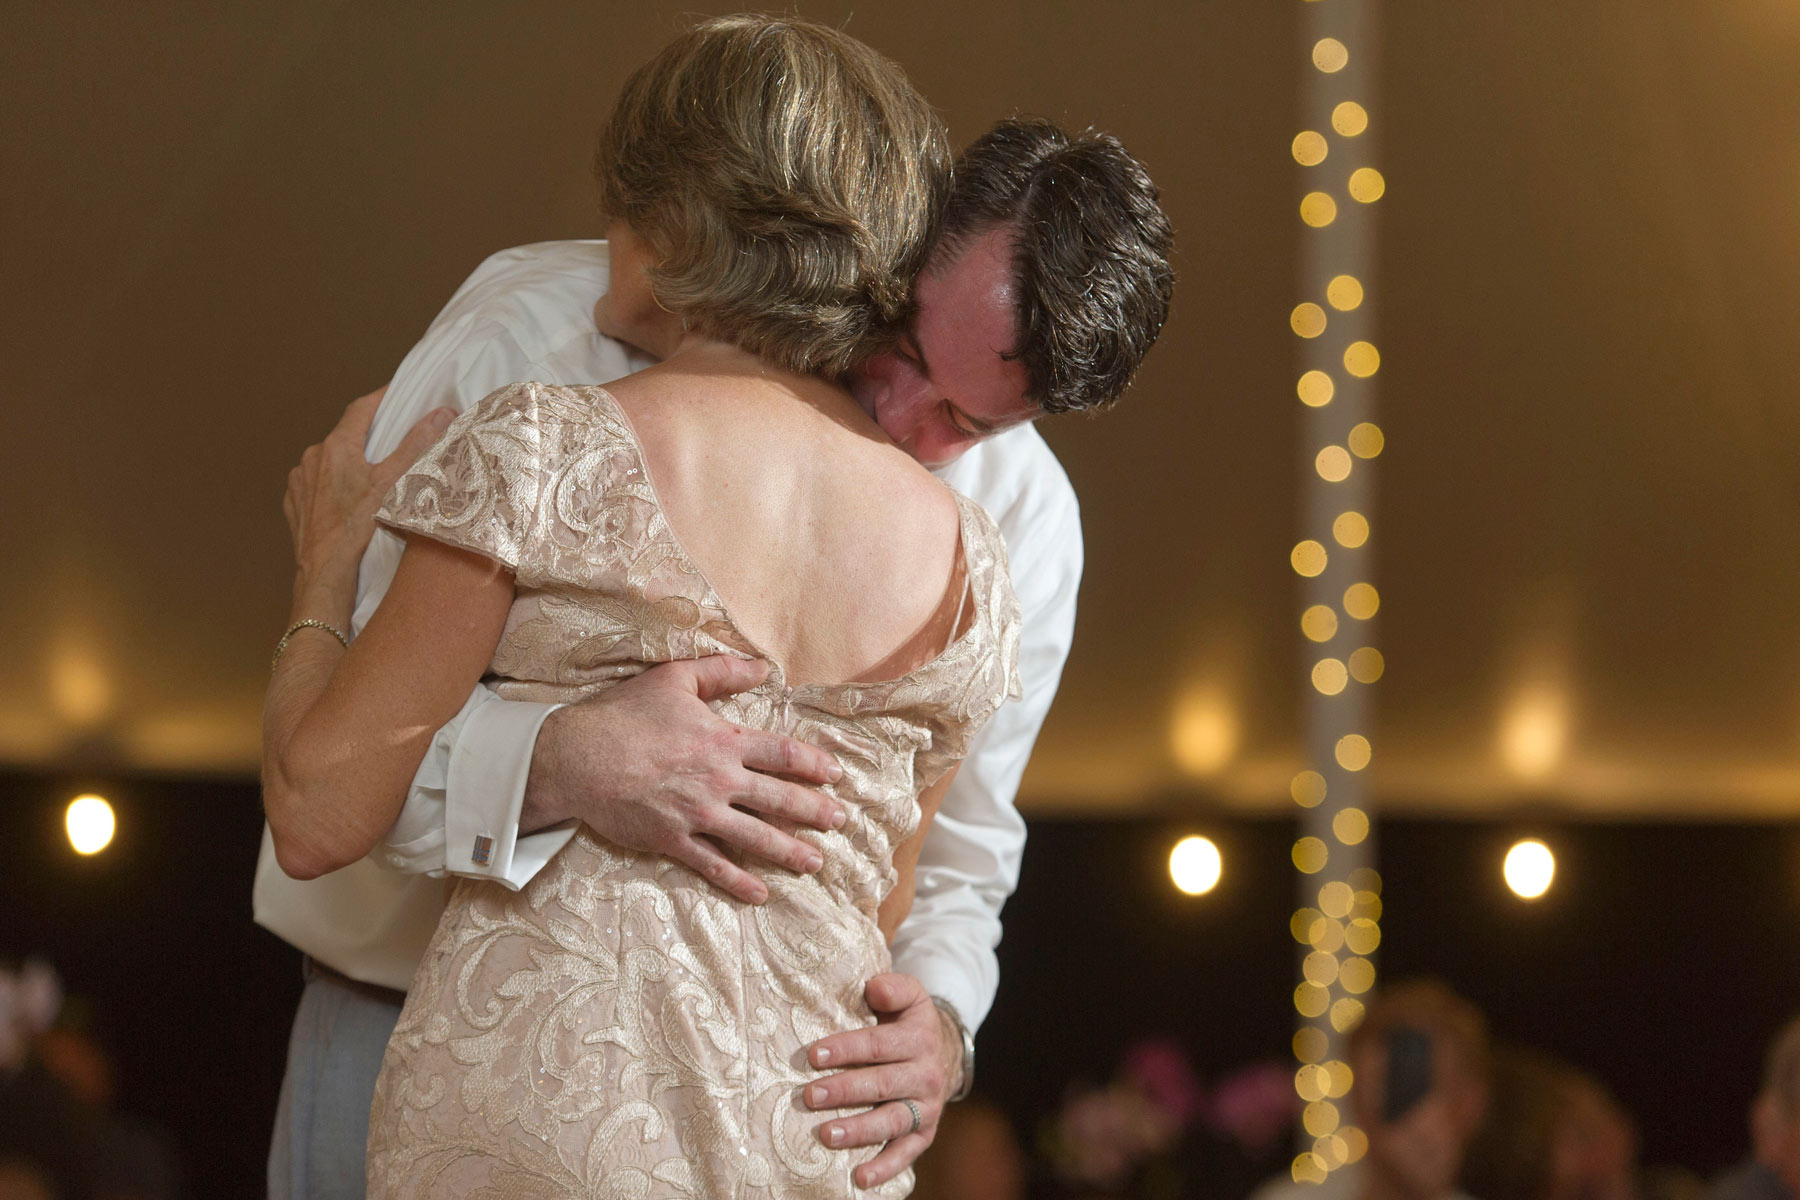 Mother and son dance at his wedding